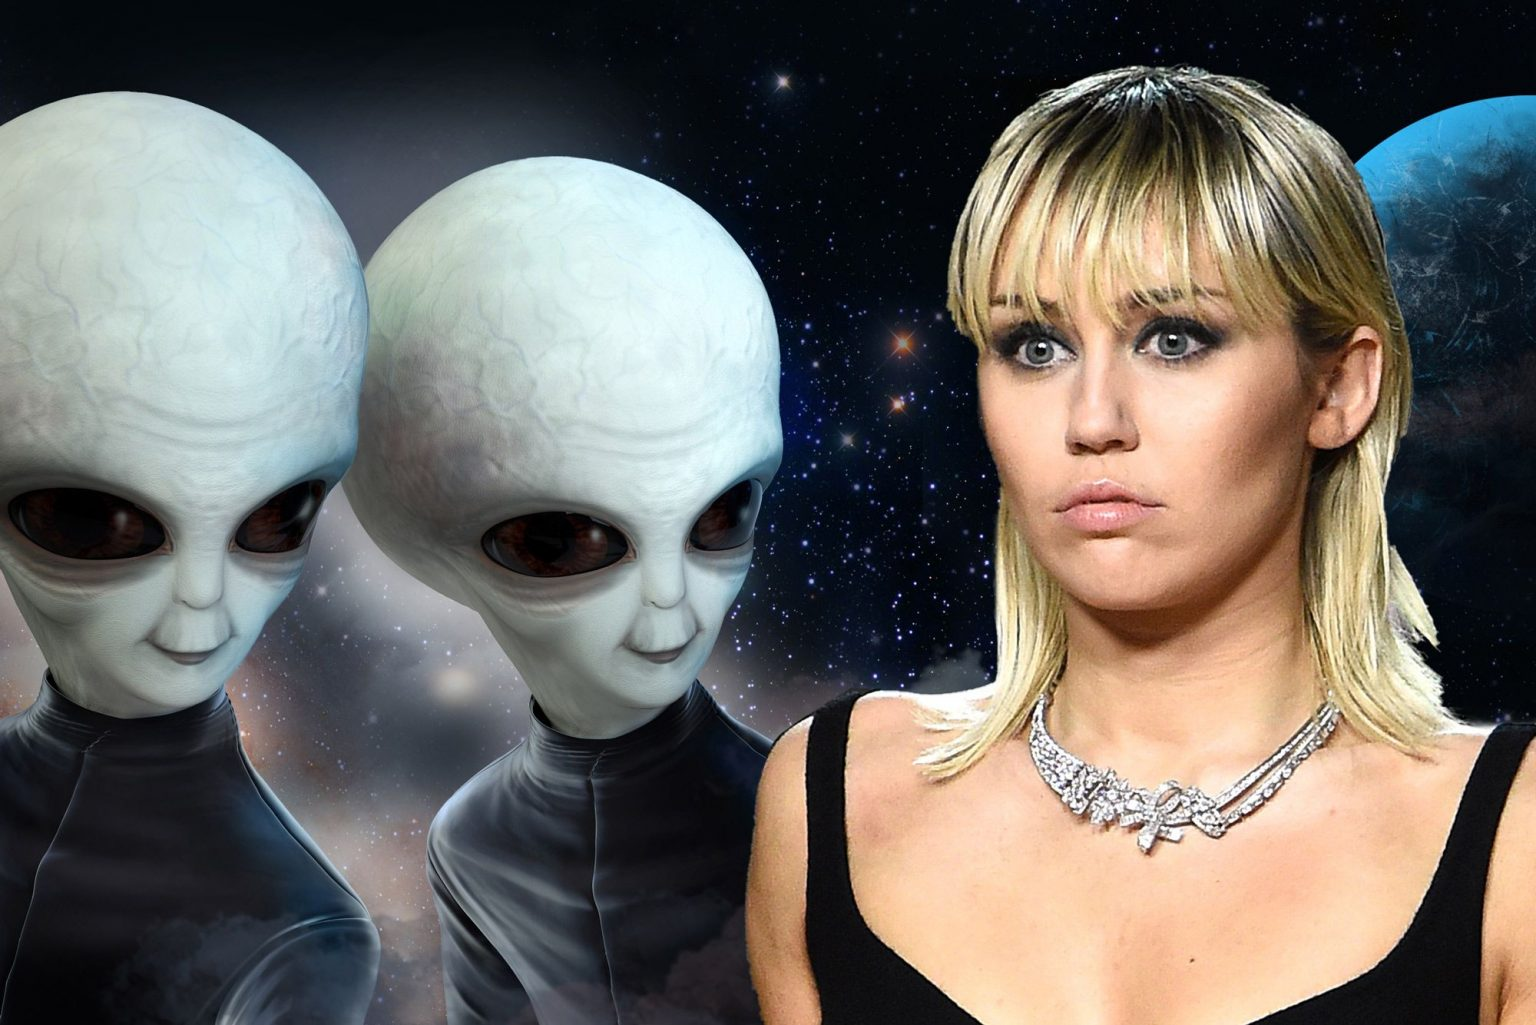 Miley Cyrus: I Was Chased By UFO, Made Eye Contact With